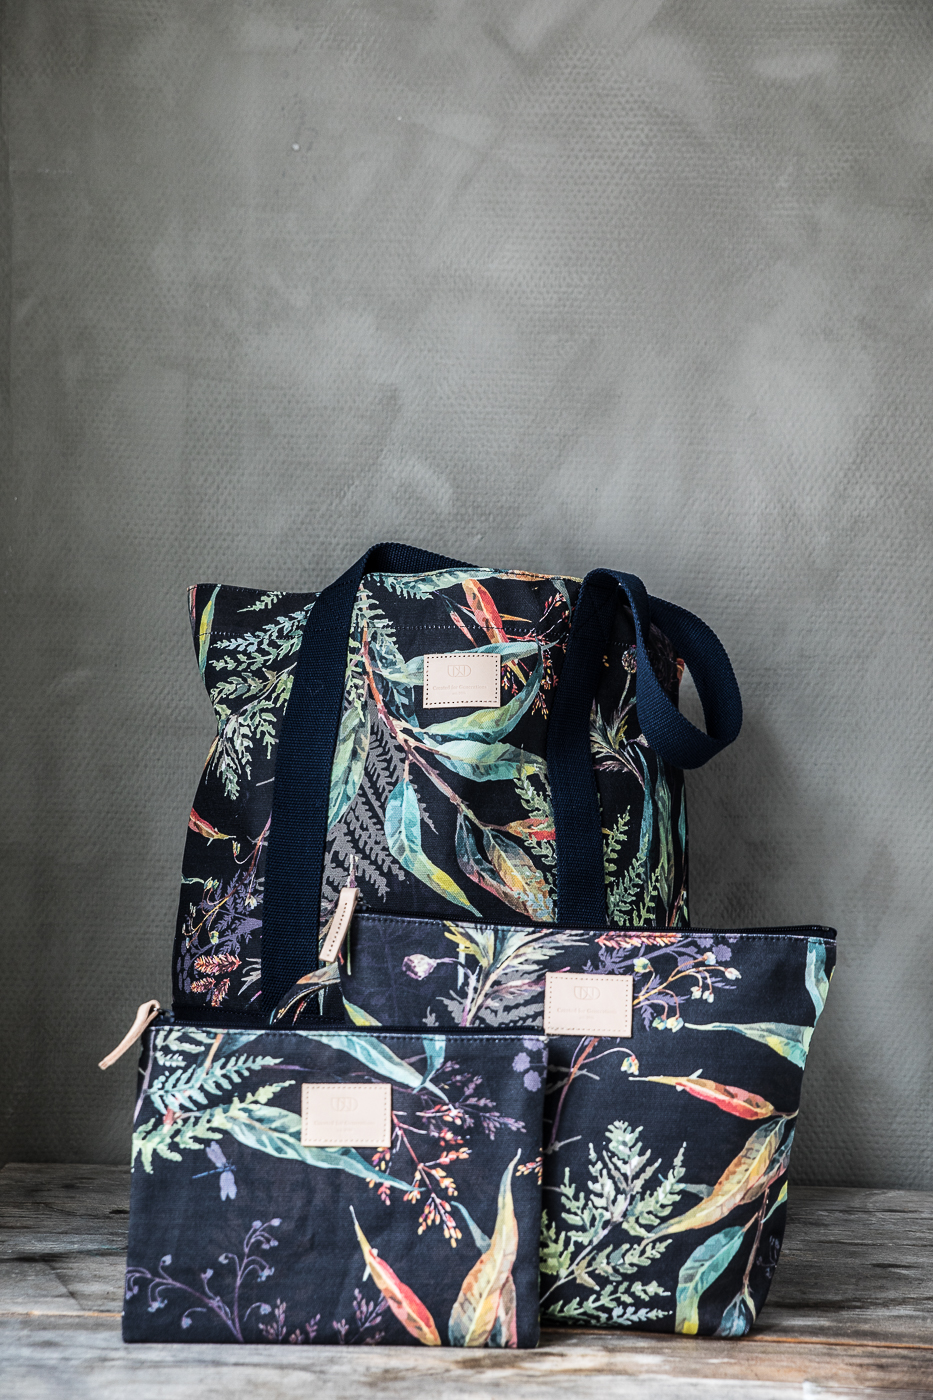 Carry On - a series of practical bags